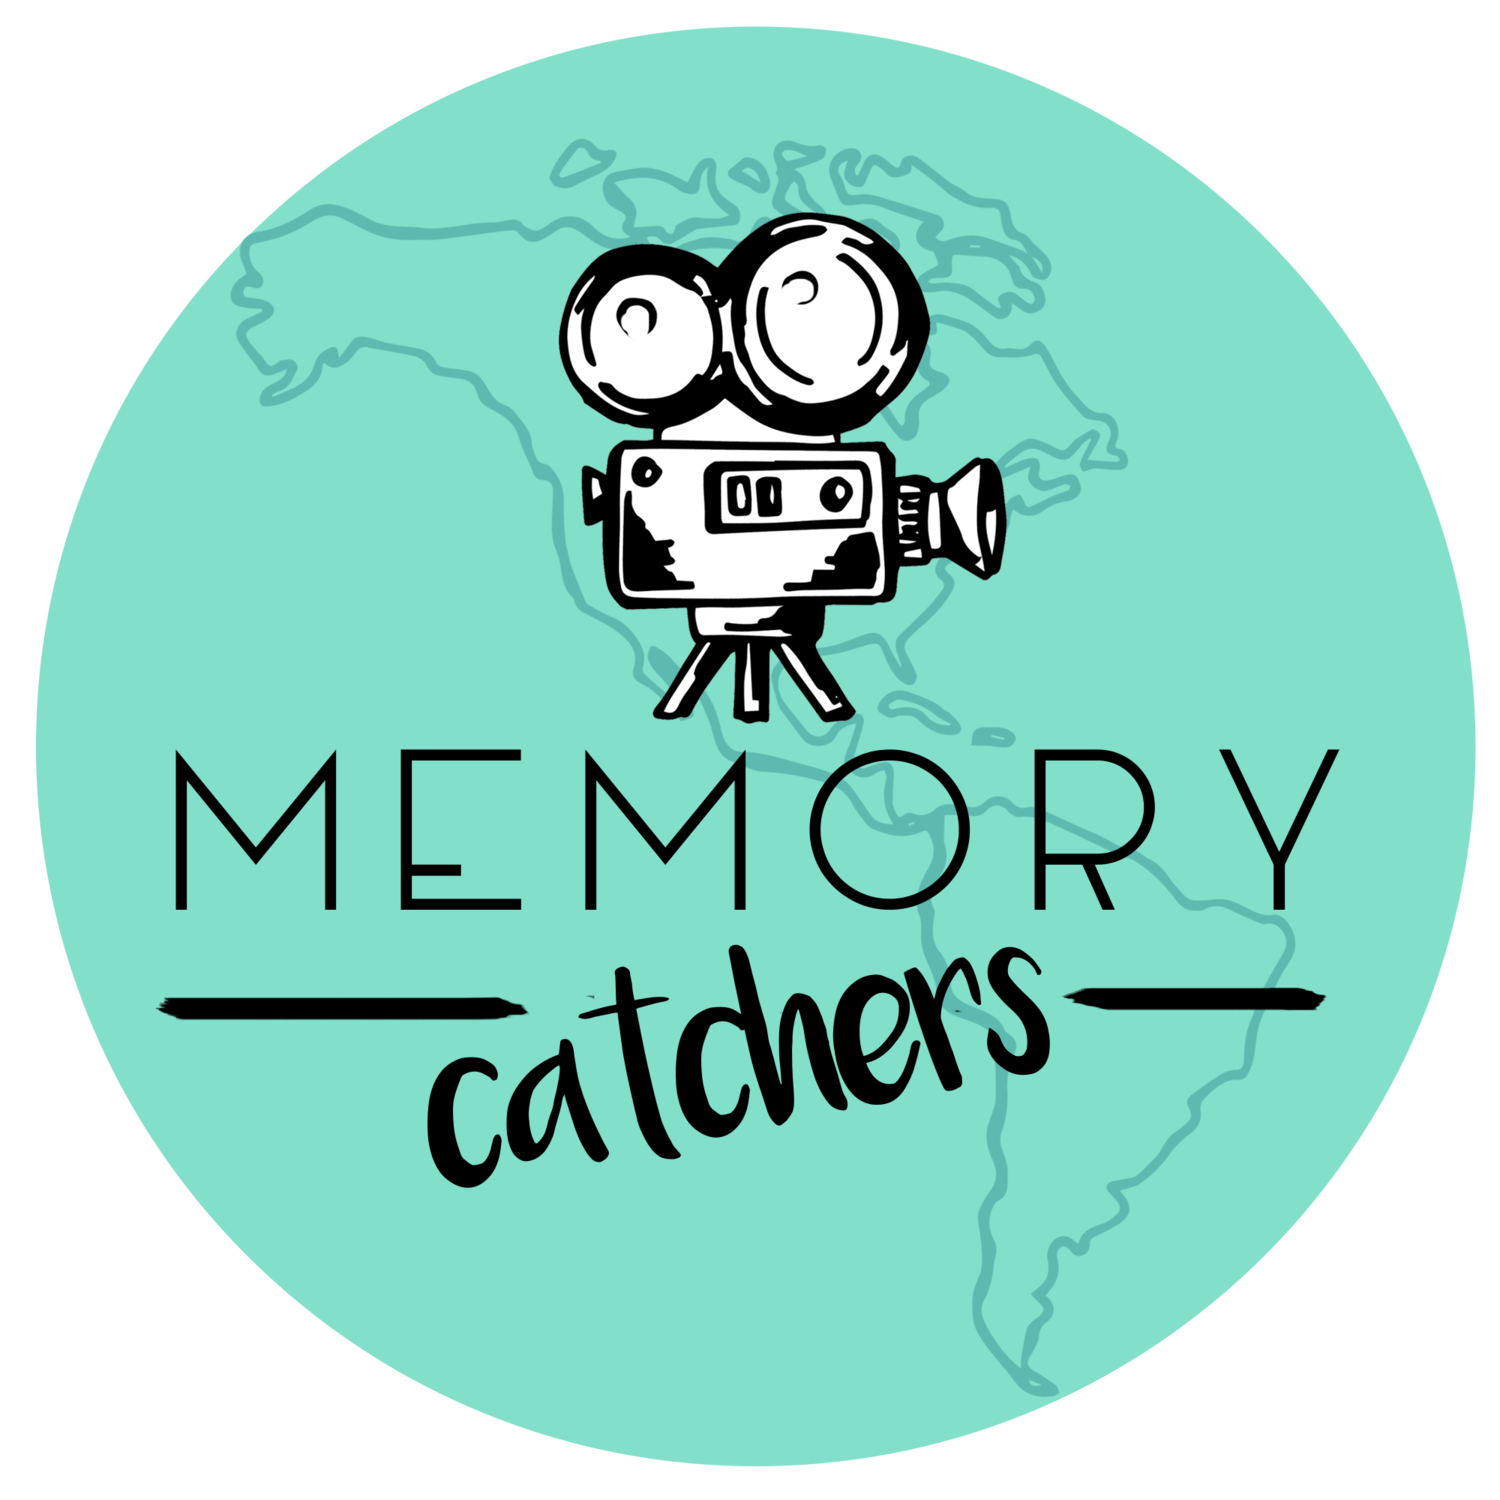 Catchers . Yearbook clipart happy memory